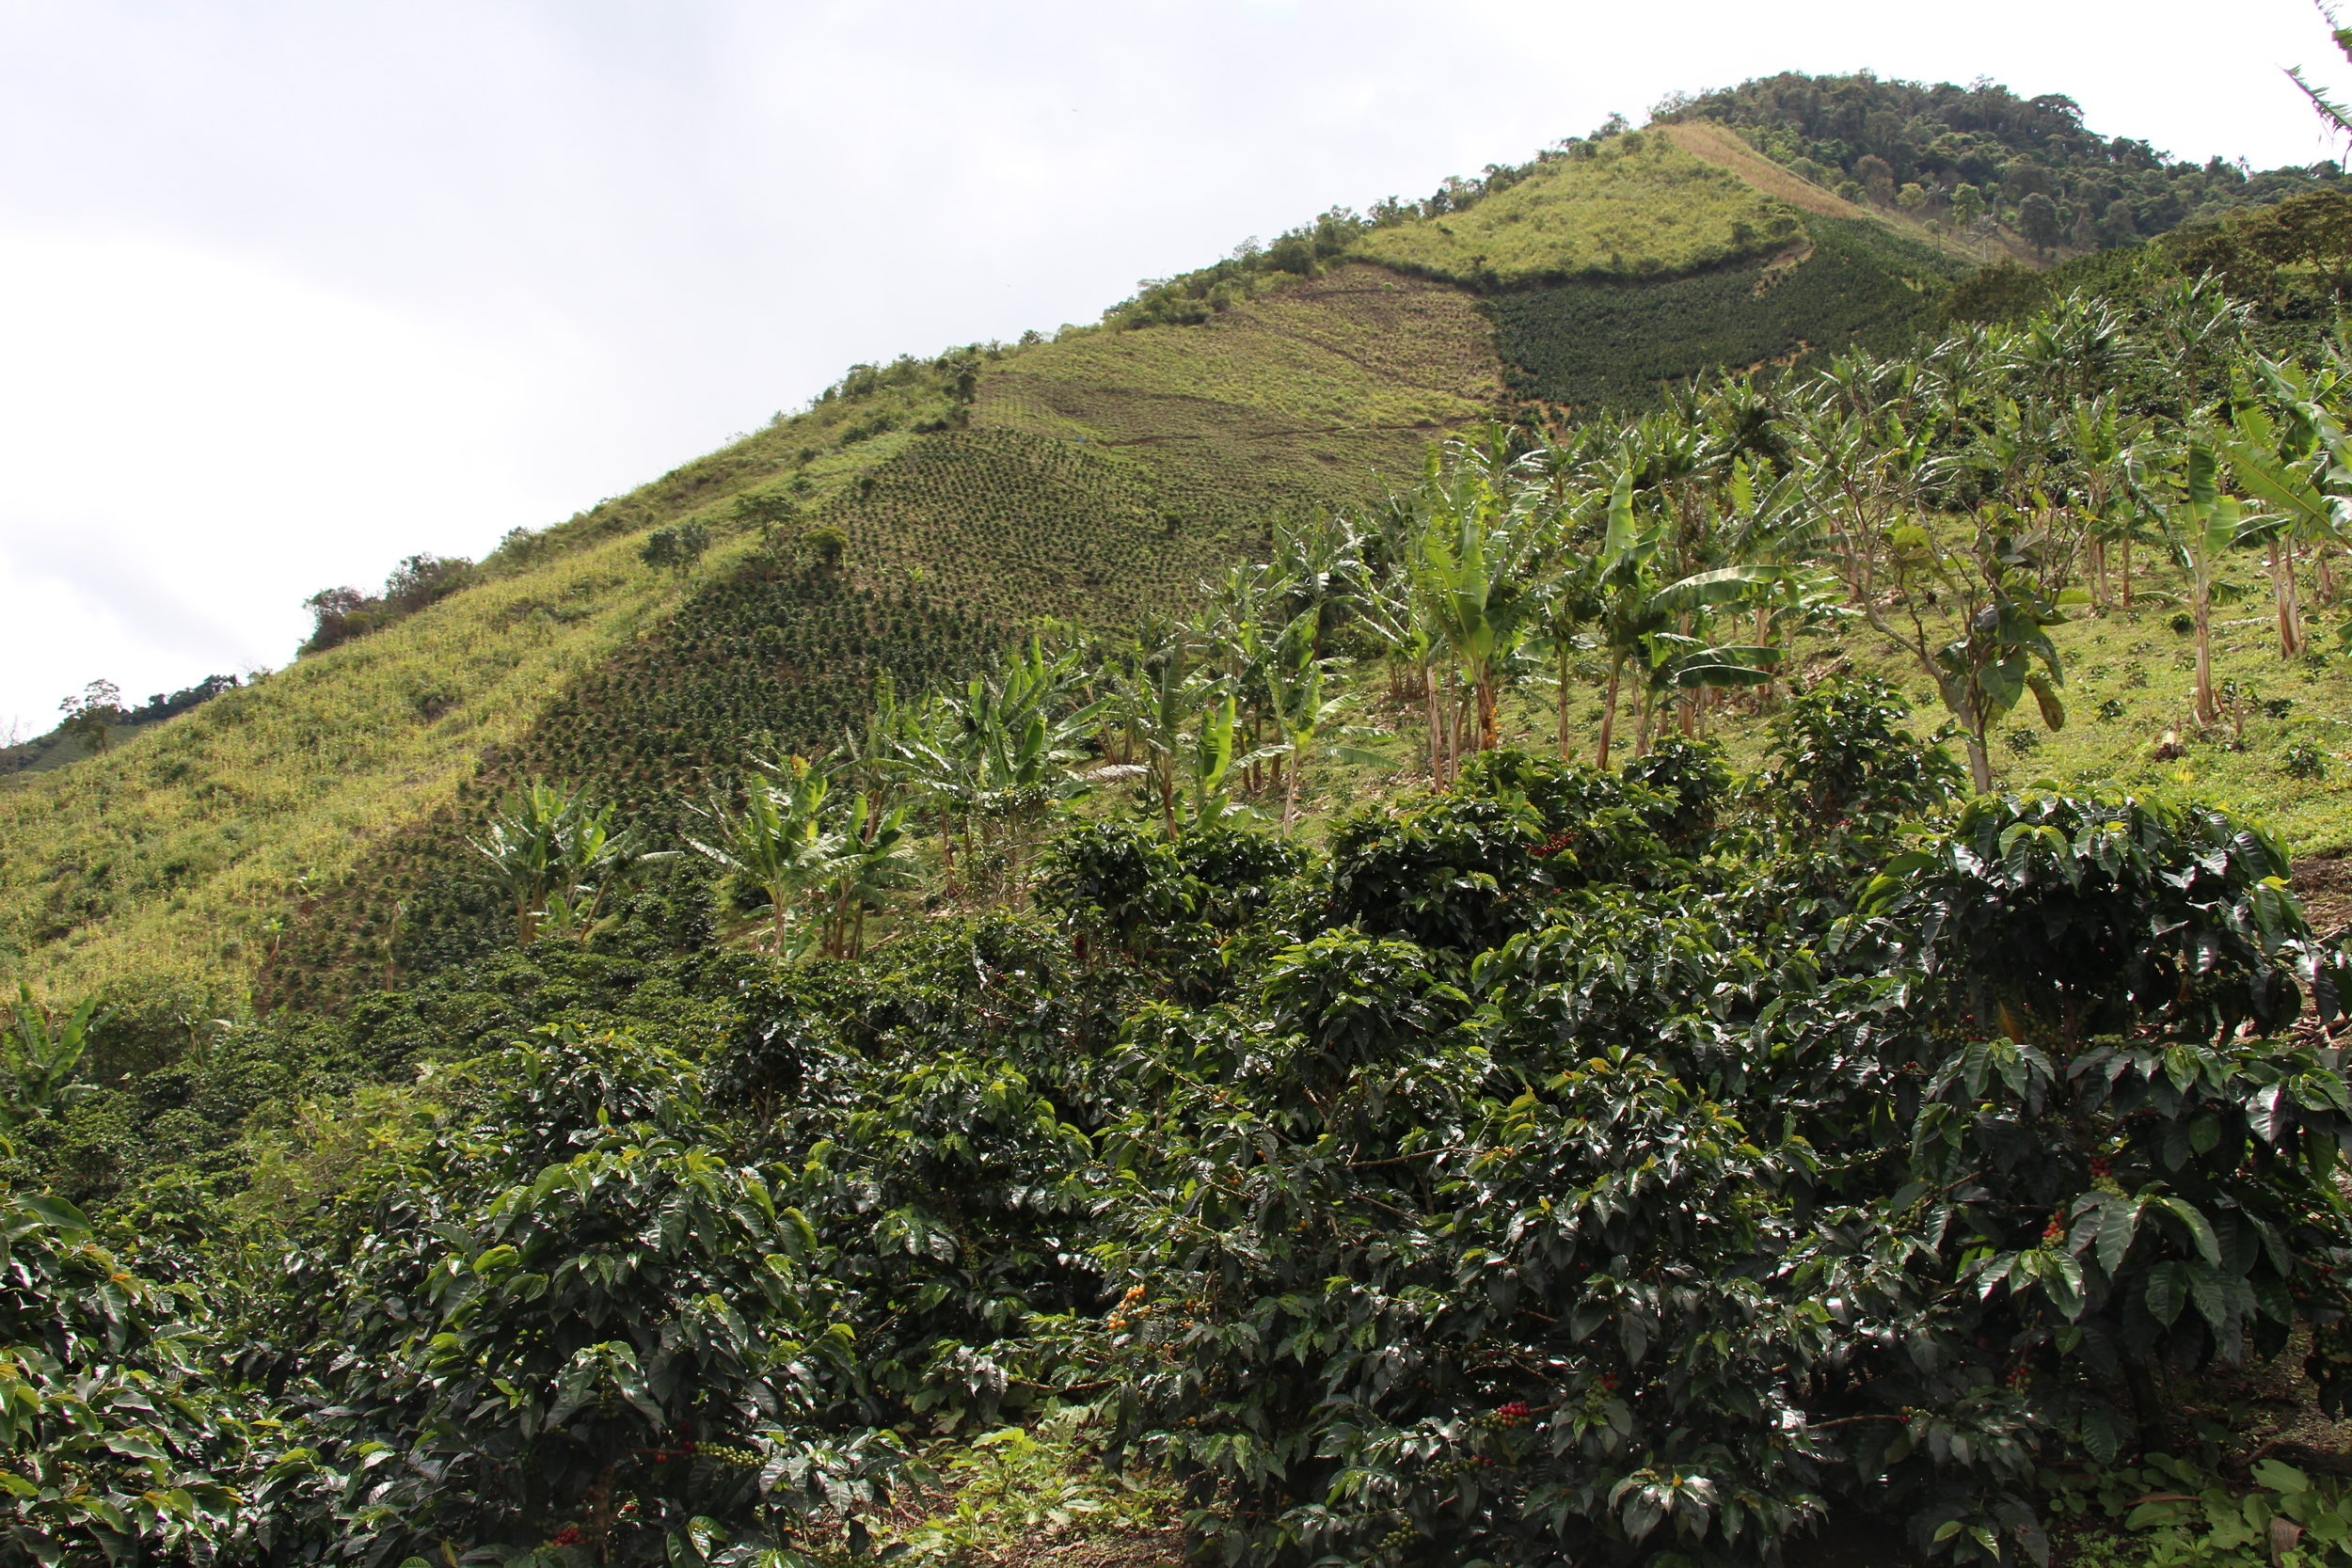 Steep Colombian slopes